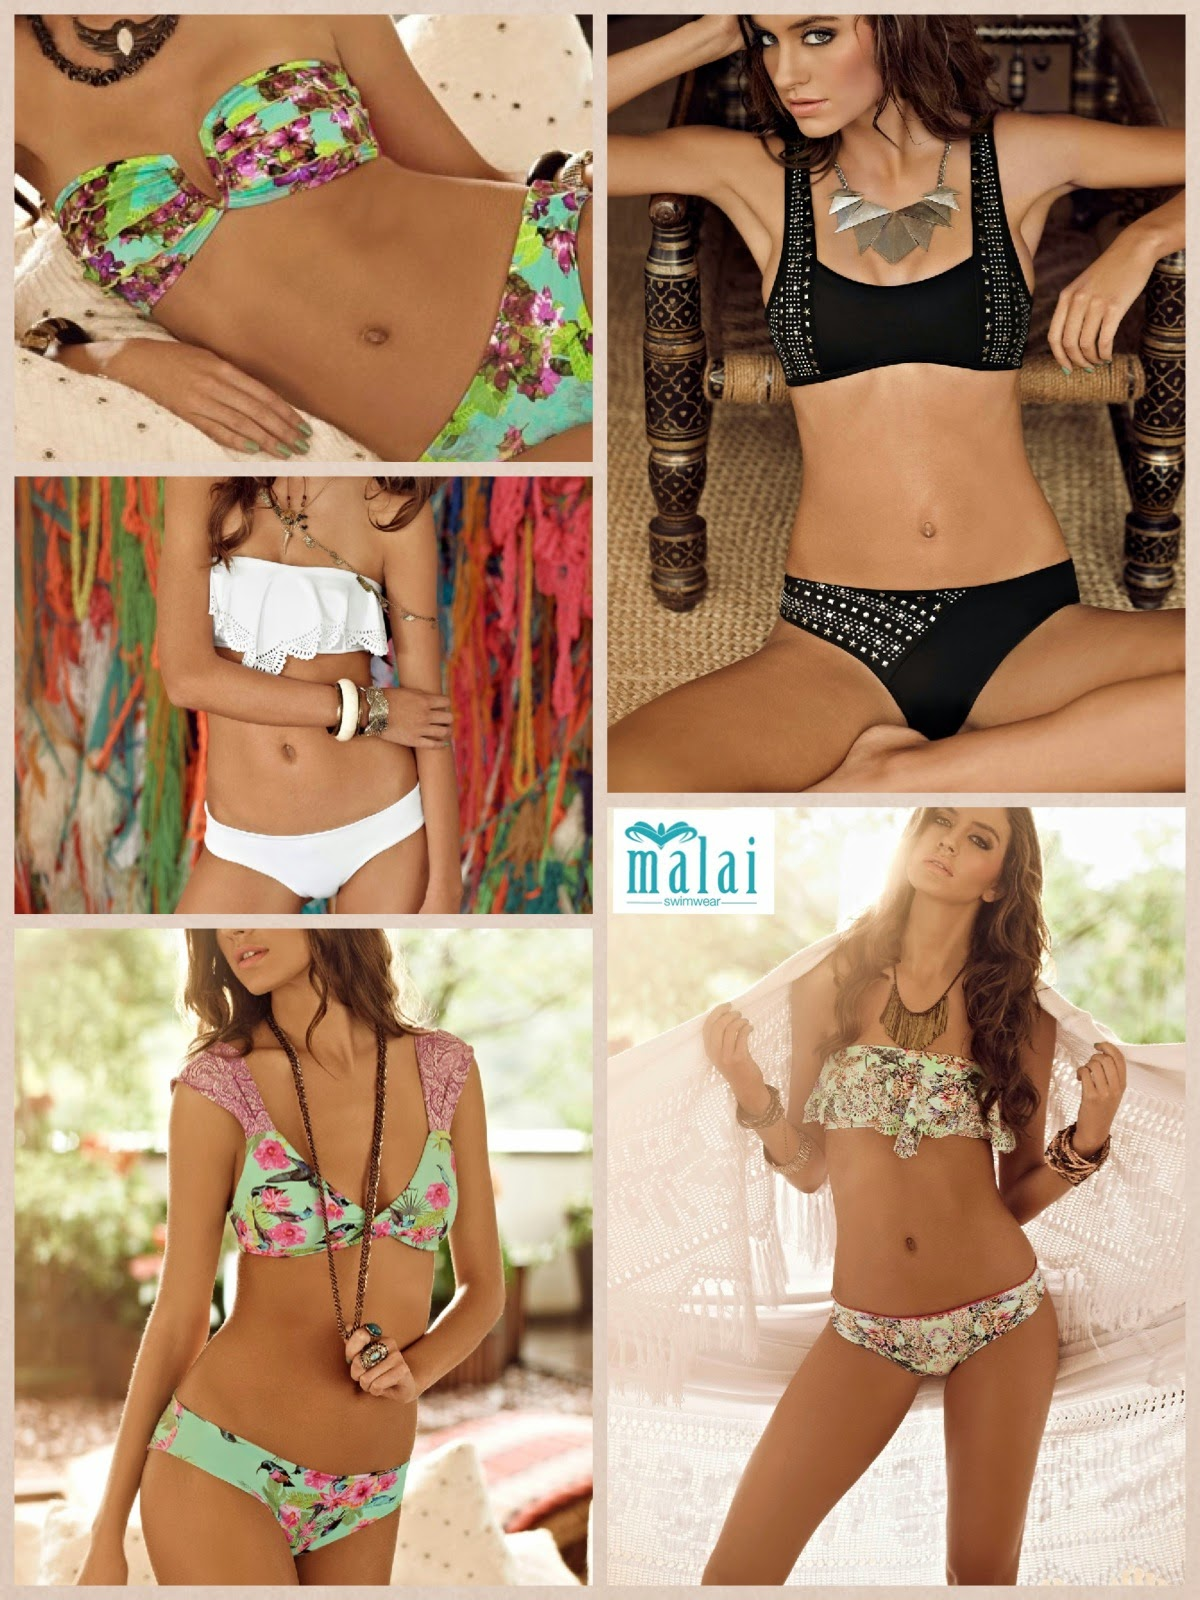 costumi 2014, calzedonia, golden point, catalogo costumi, yamamay, malai beachwear